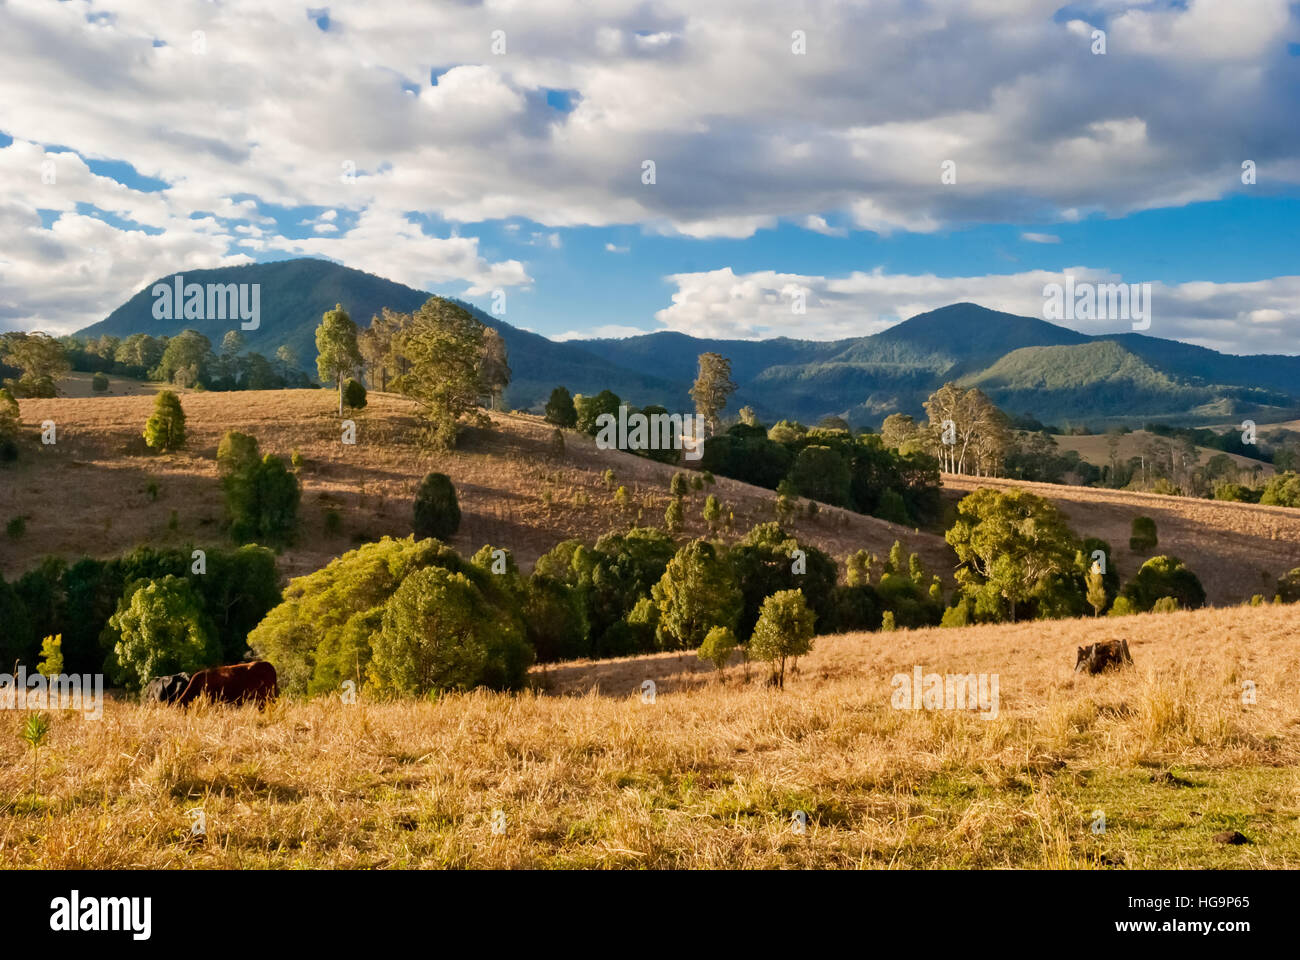 Nimbin, Australie, paysage rural Photo Stock